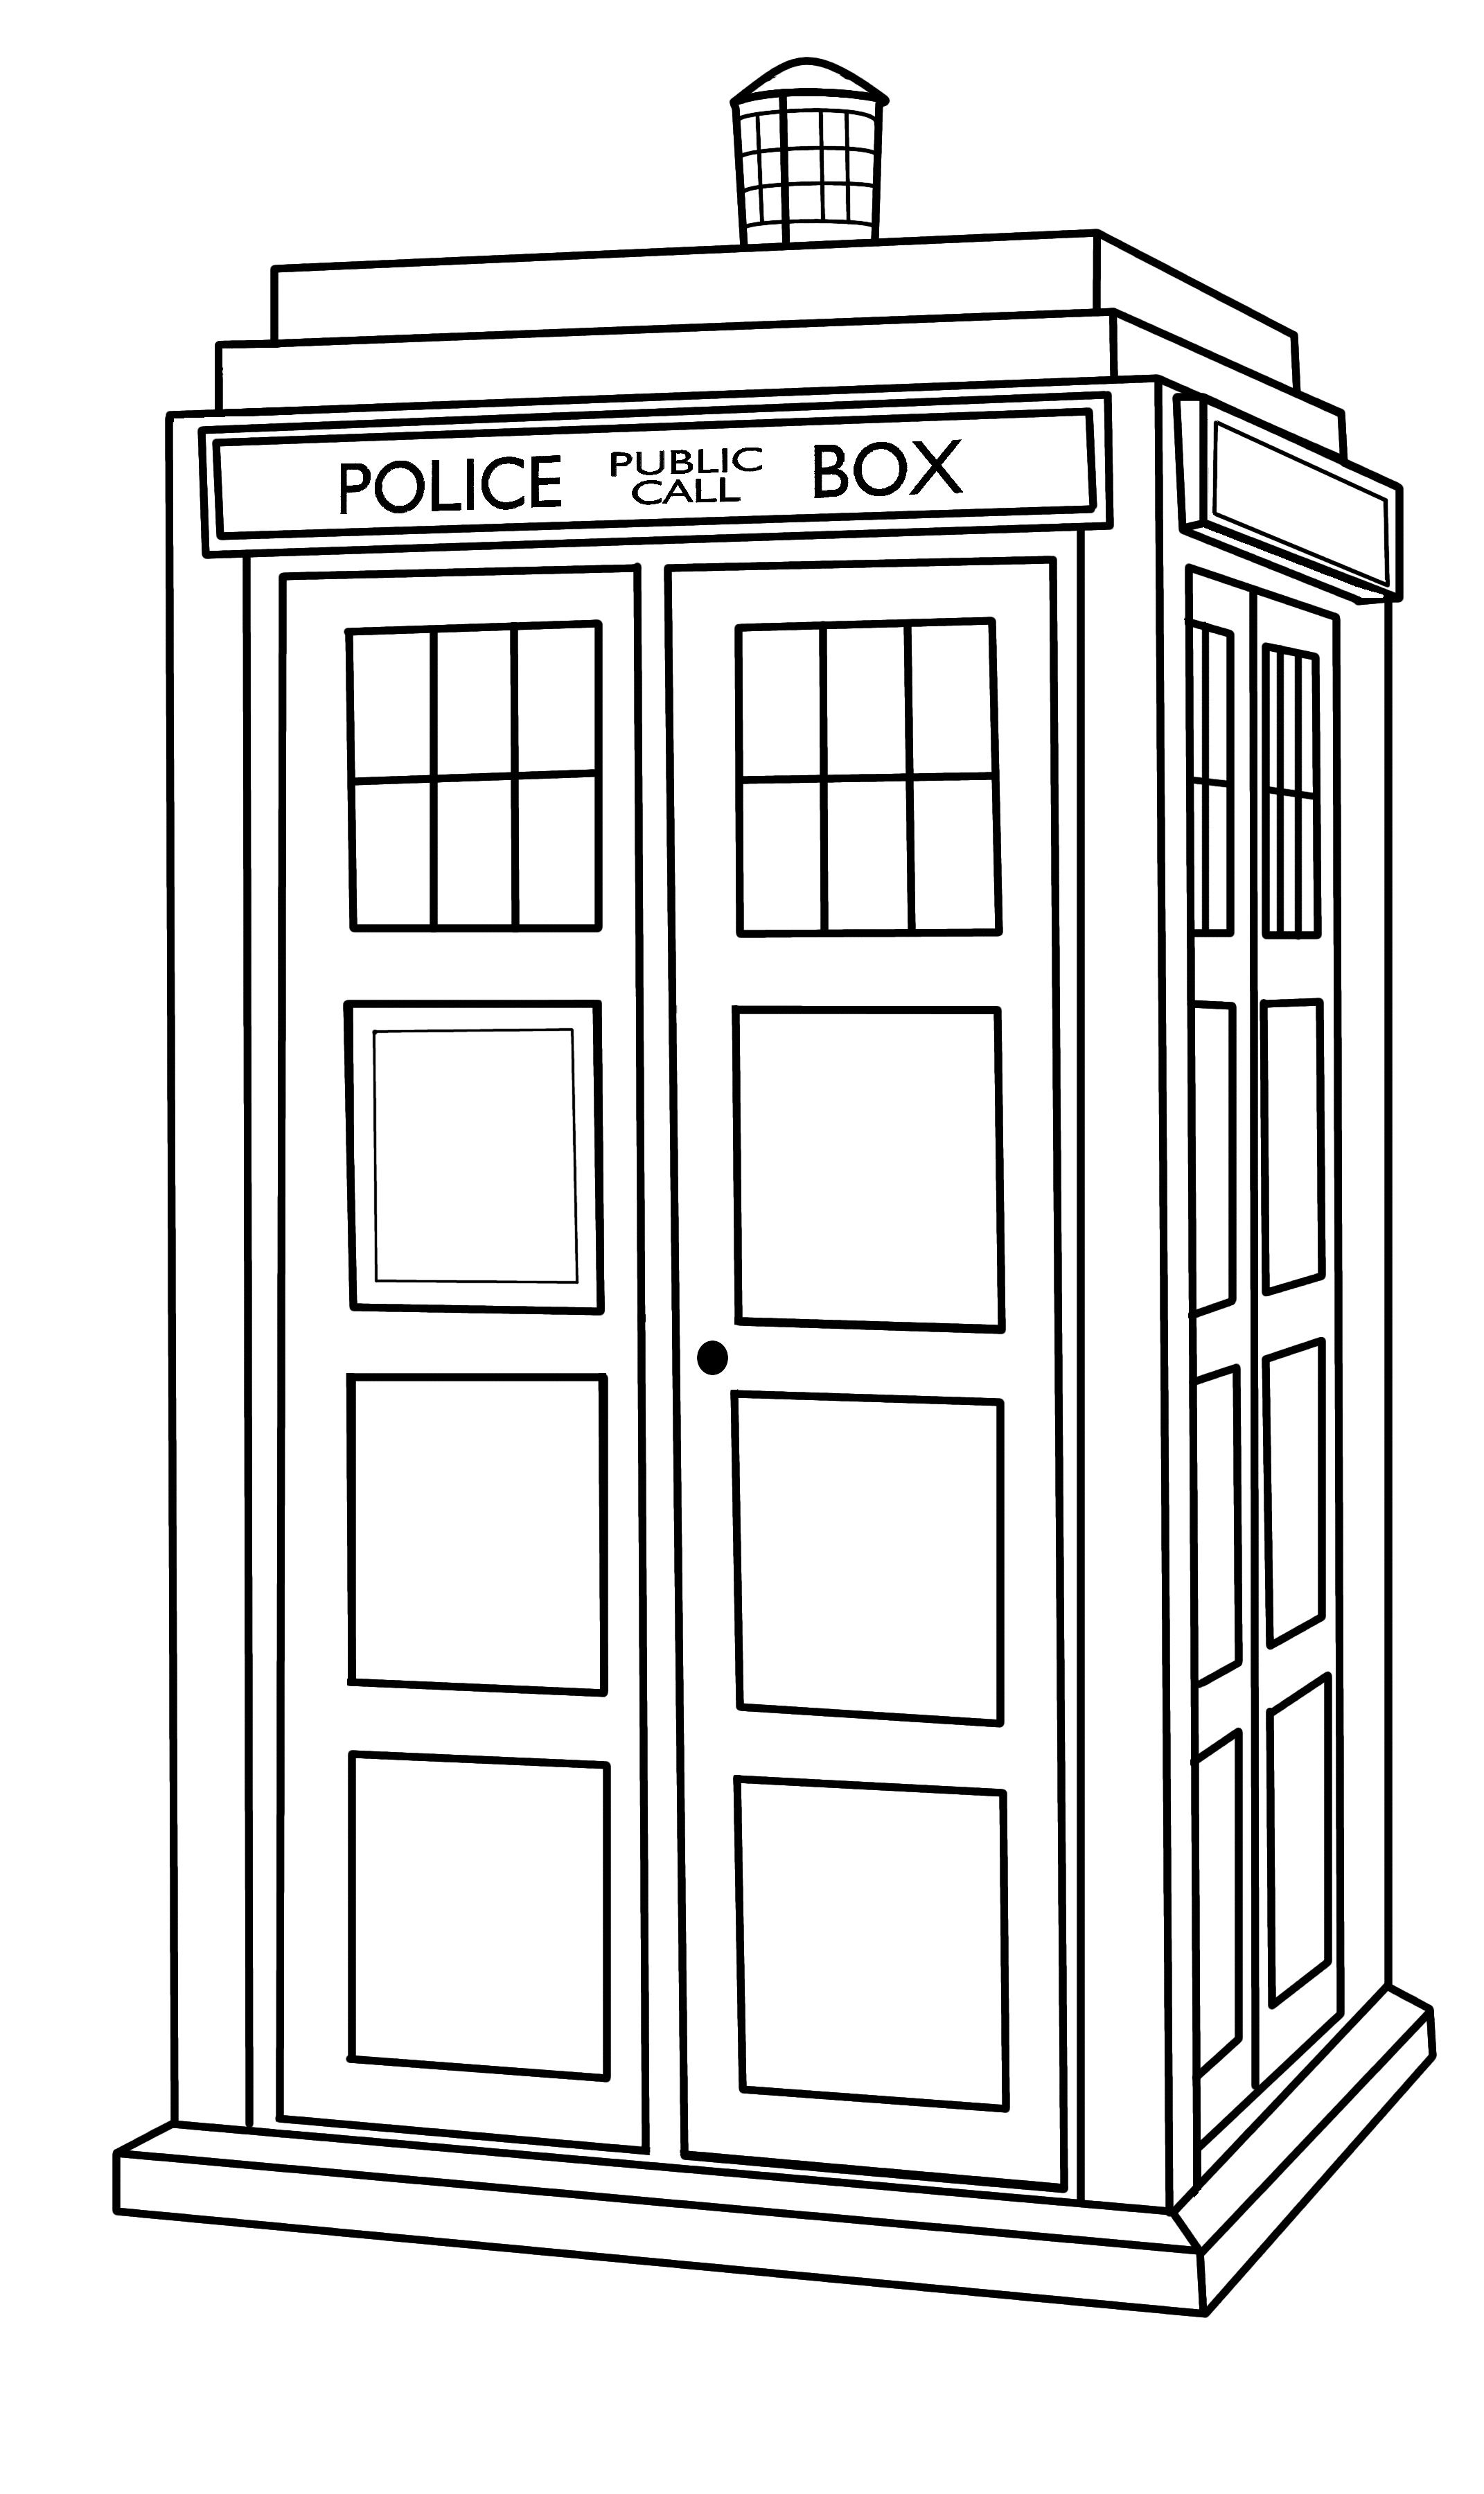 tardis template for cake - pin by time lord on doctor who pinterest tardis